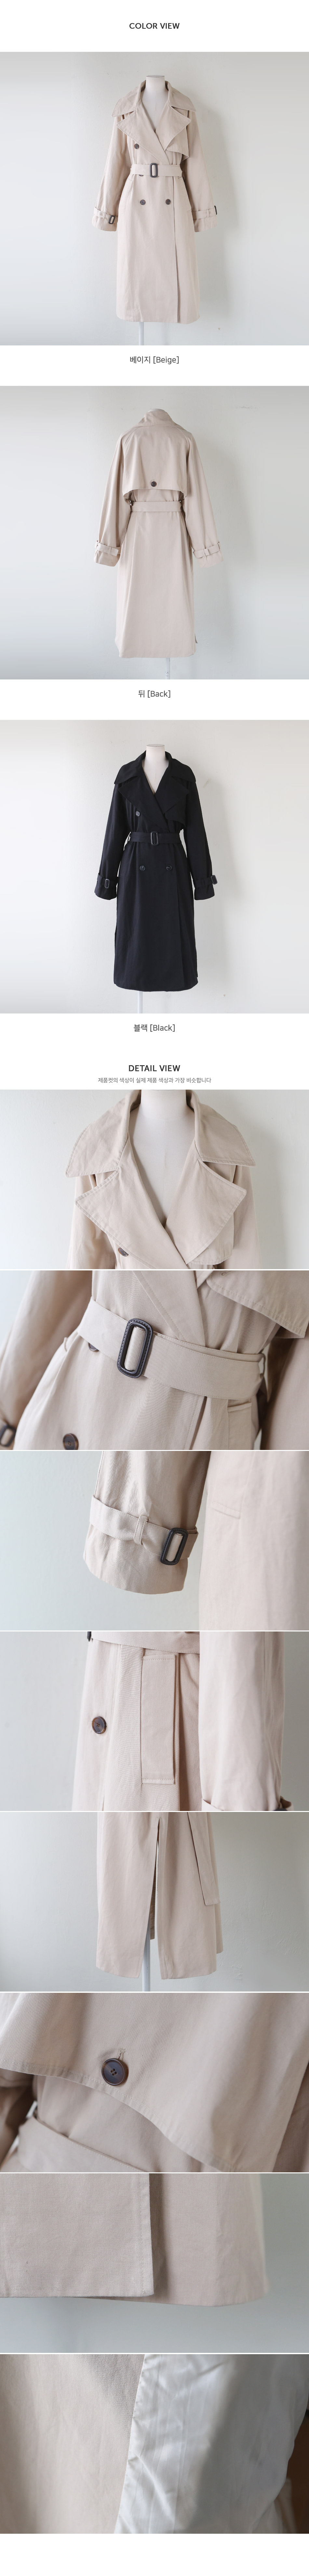 Steady long trench coat